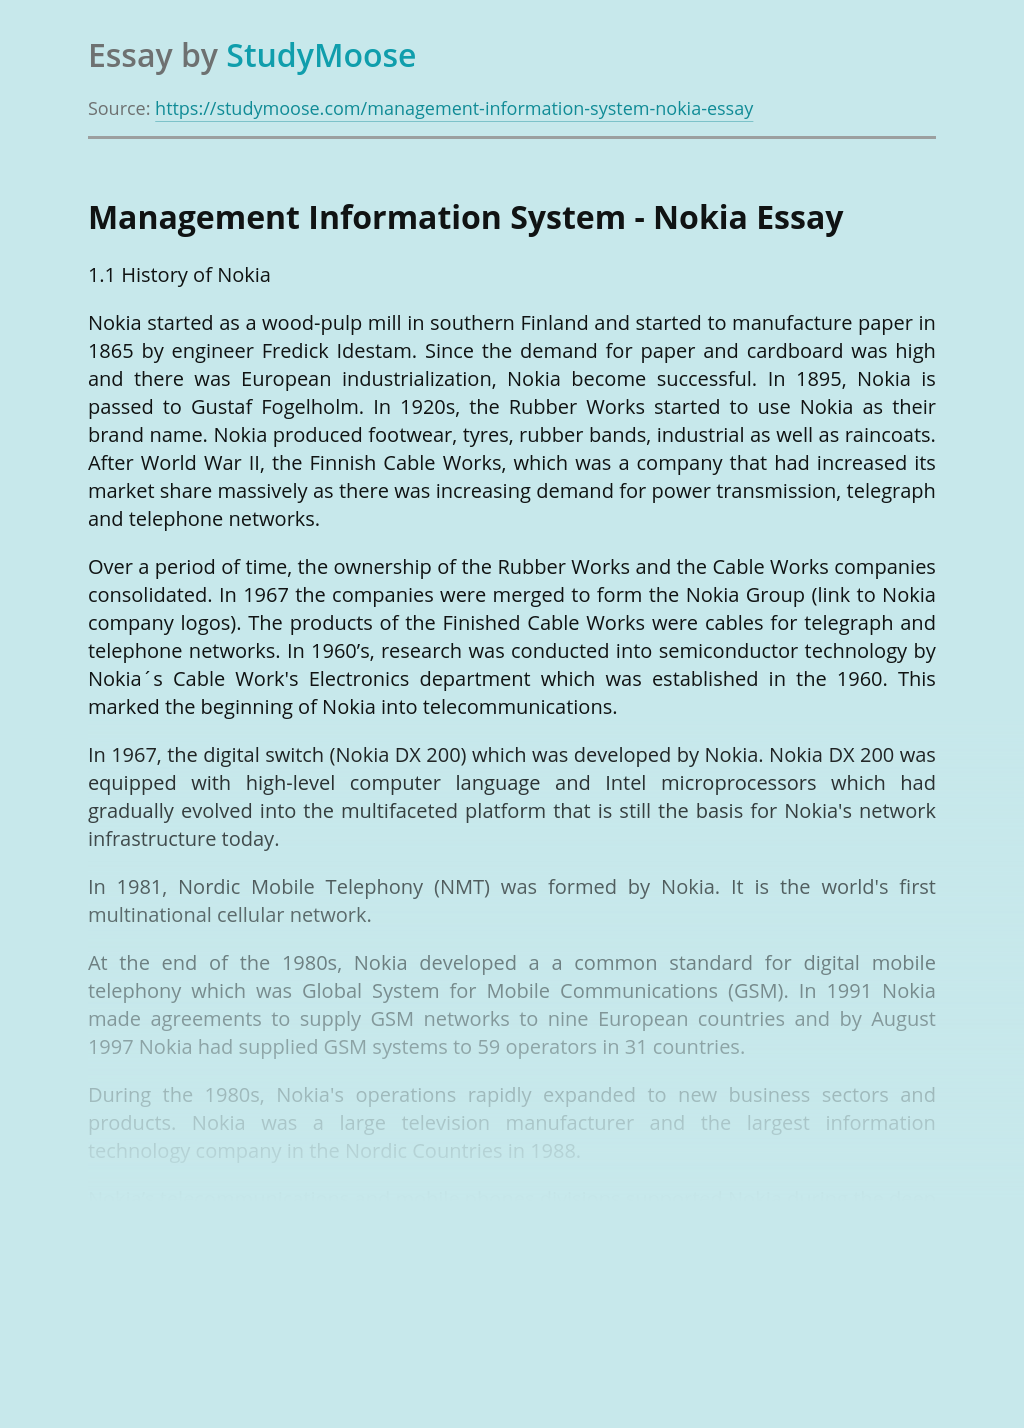 Management Information System - Nokia